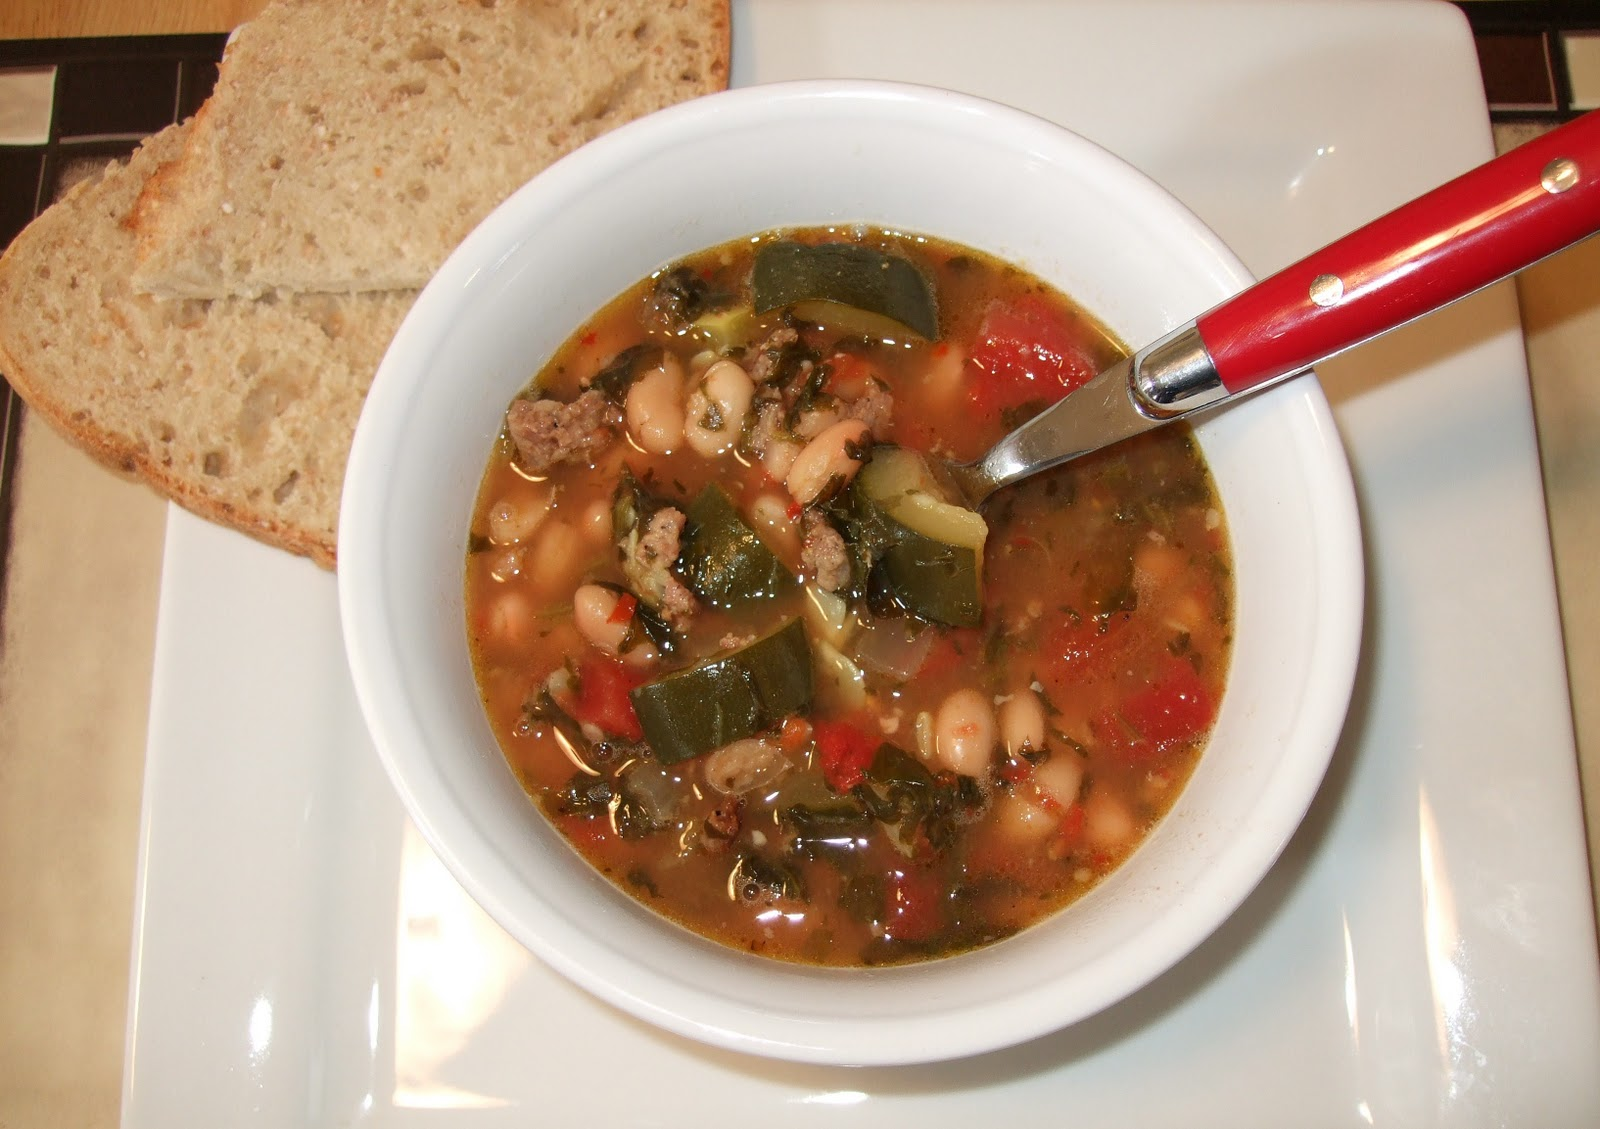 Blayneskitchen: Tuscan white bean and sausage soup